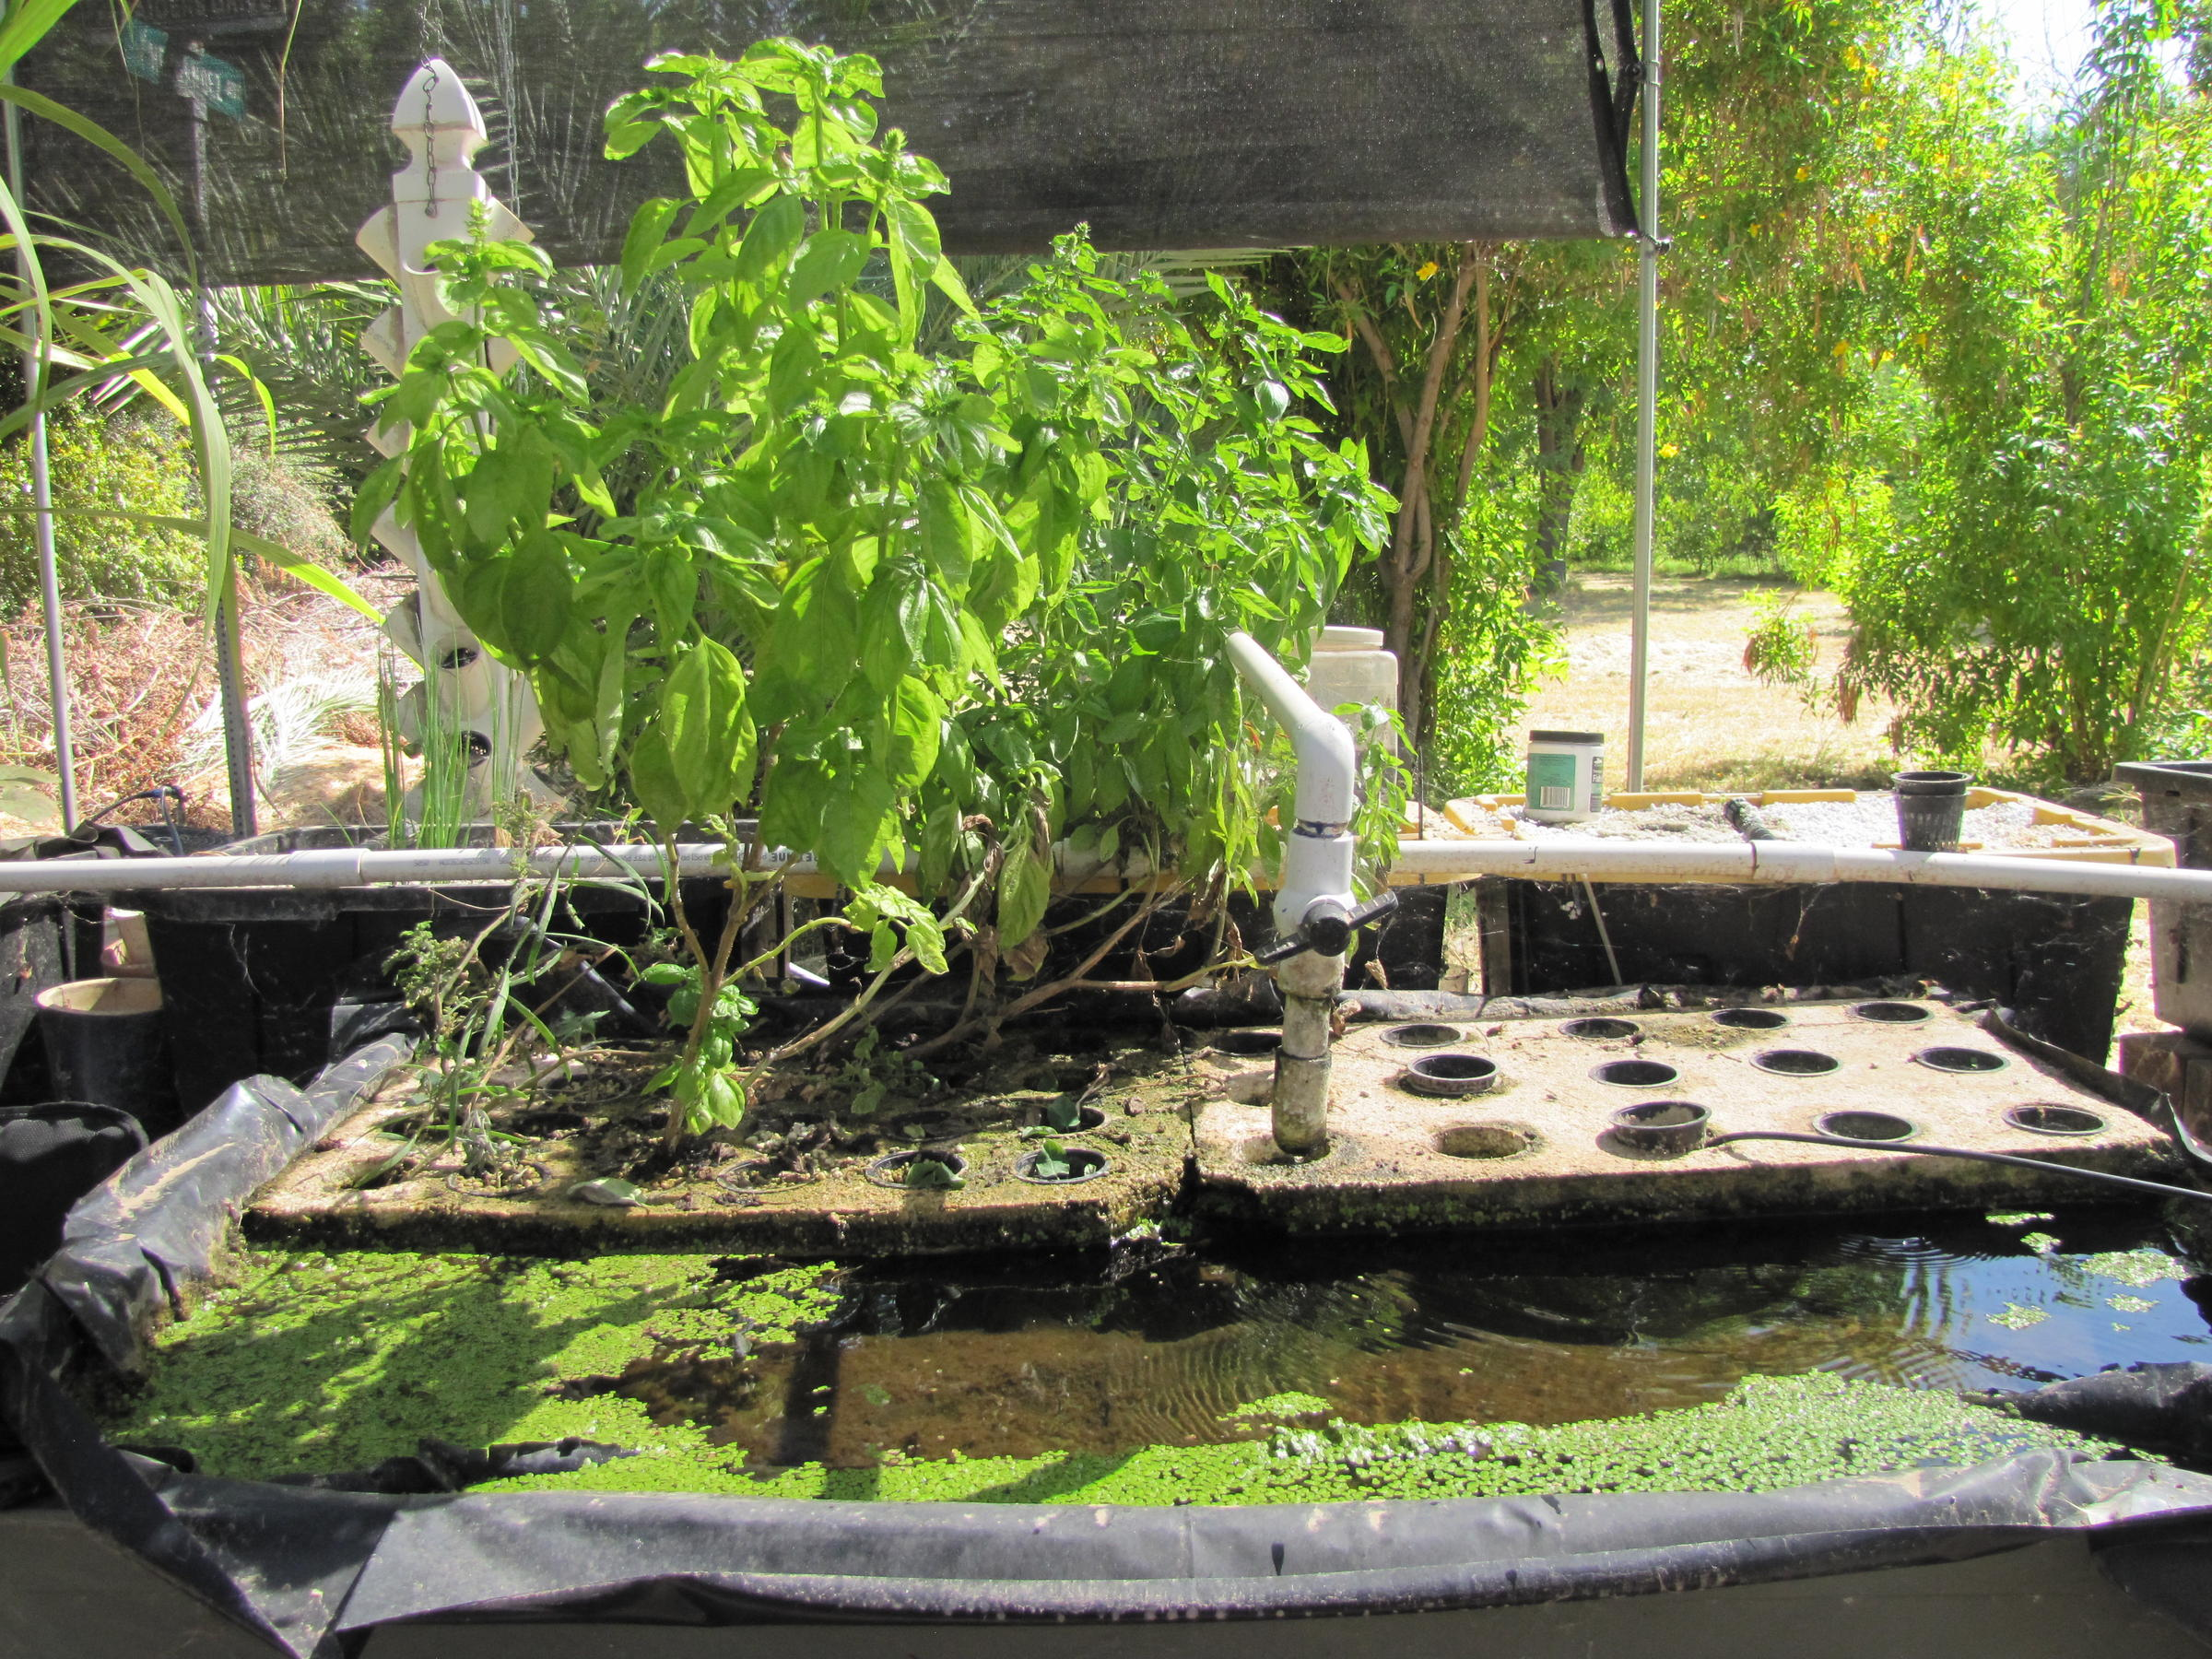 green thumbs and backyard jungles how gardeners contribute to